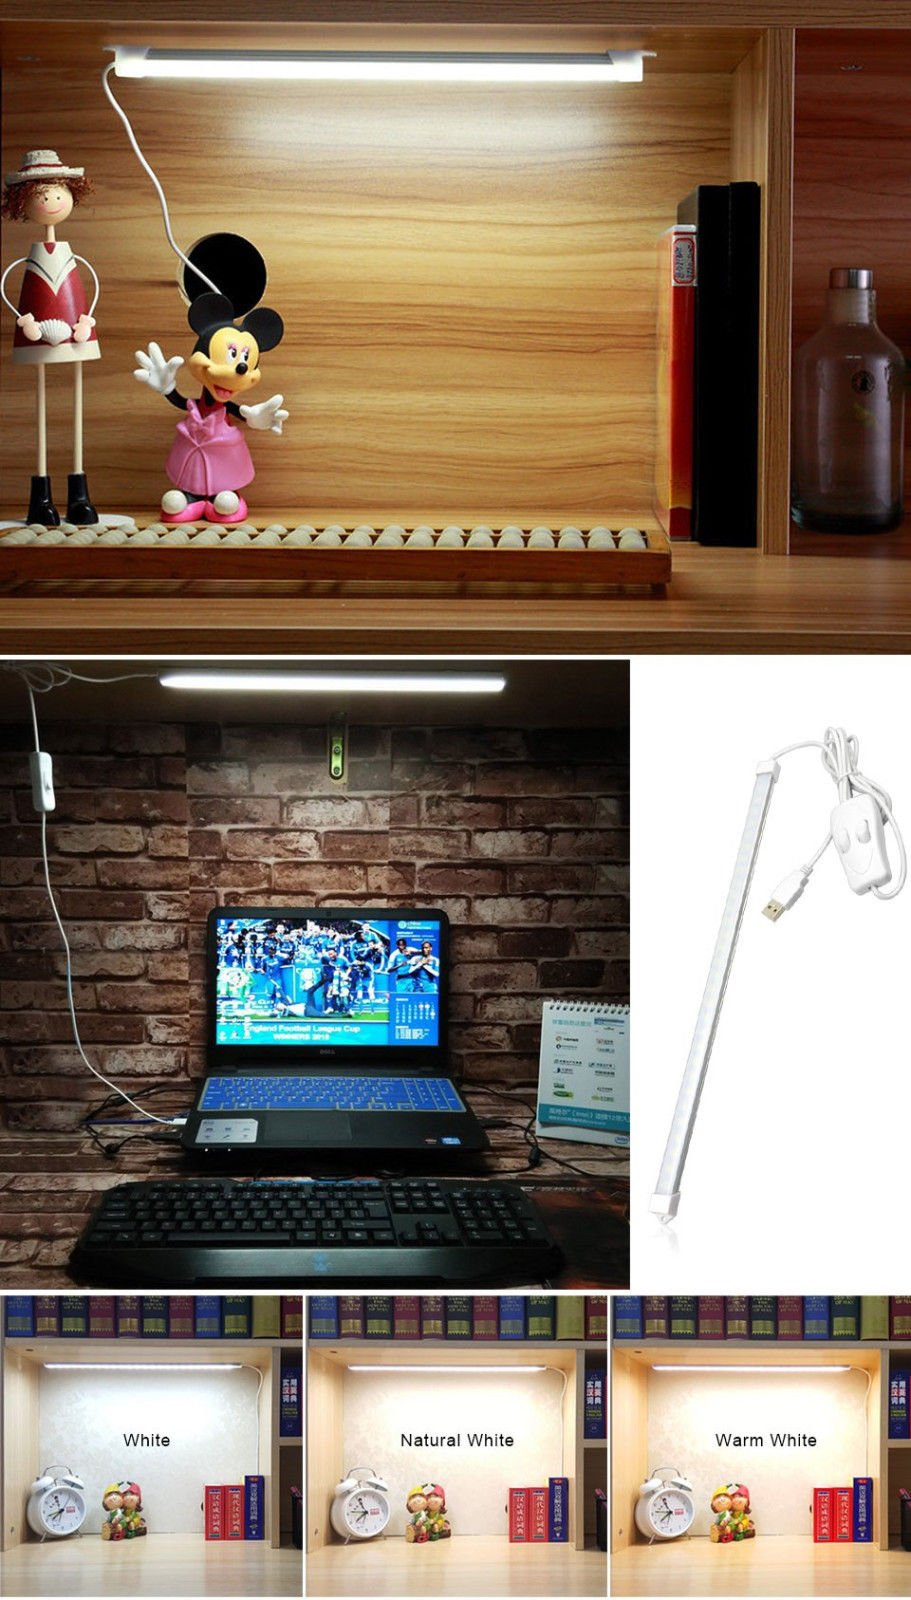 Portable USB 48LED 5W Reading Strips Craft Light Eye-care LED Desk Reading Lamp with Cool and Warm White Color Light Great for Craft Table,Pianos, Reading,led tube bulbs,Work Tables, Music Stands,1PCS